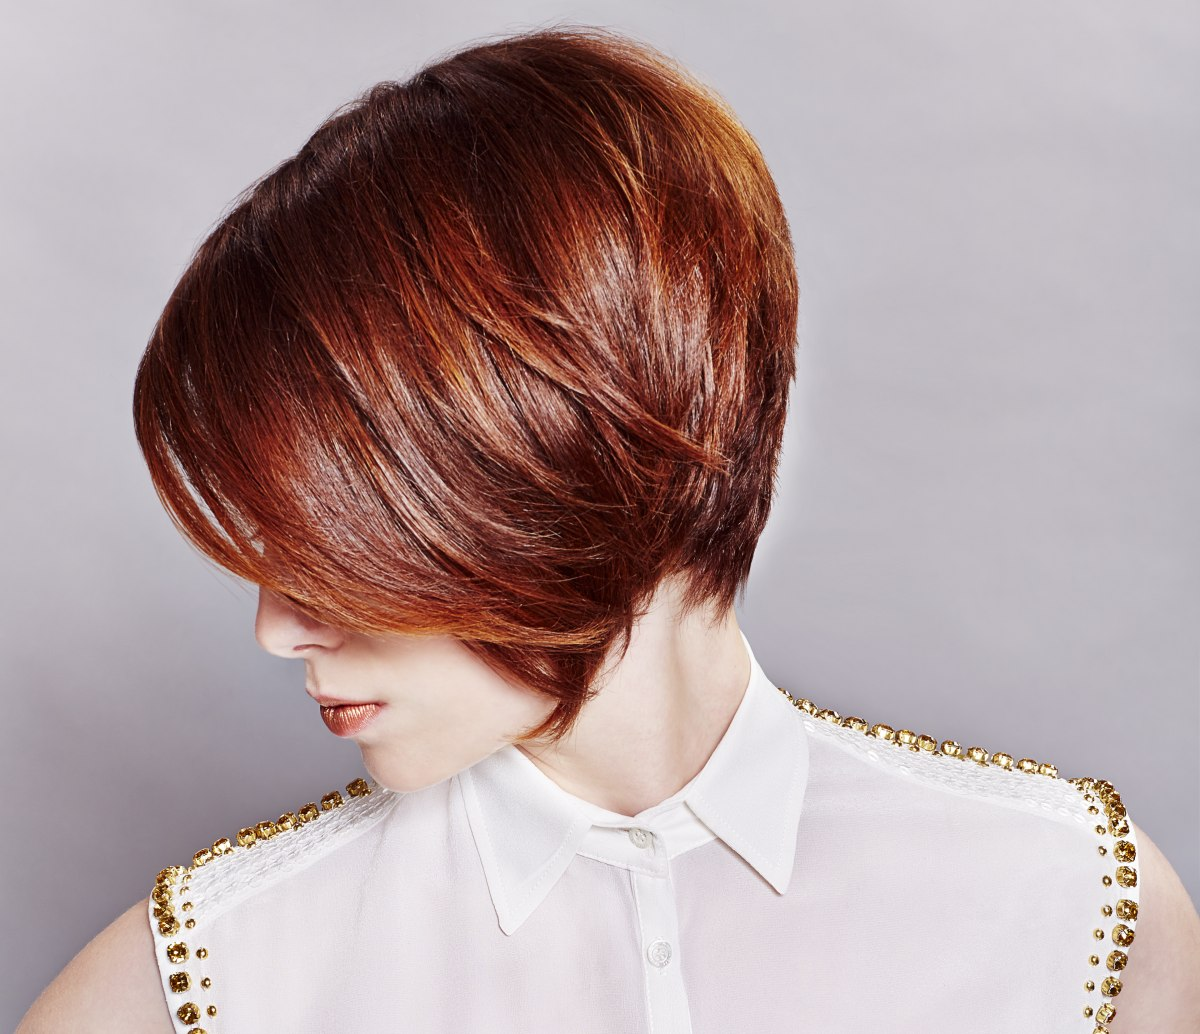 Classy short hairstyle with a round back and a dark red